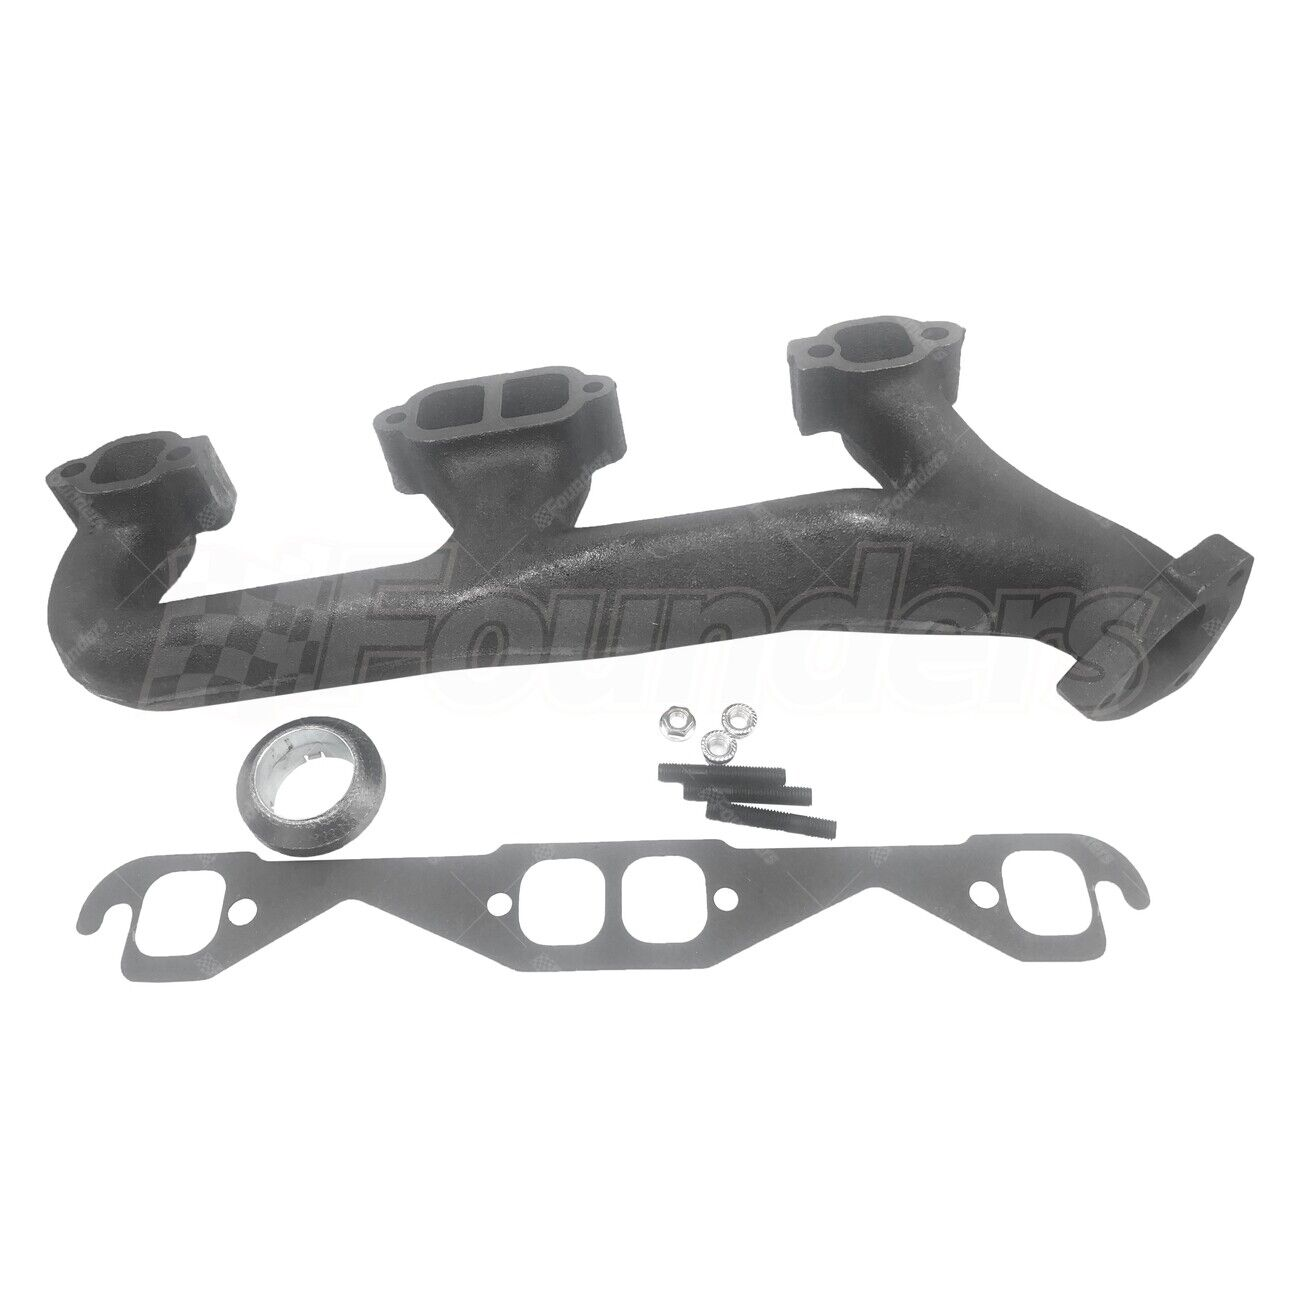 New Exhaust Manifold Right Passenger Side Fits Cadillac Chevy Gmc Pickup Truck